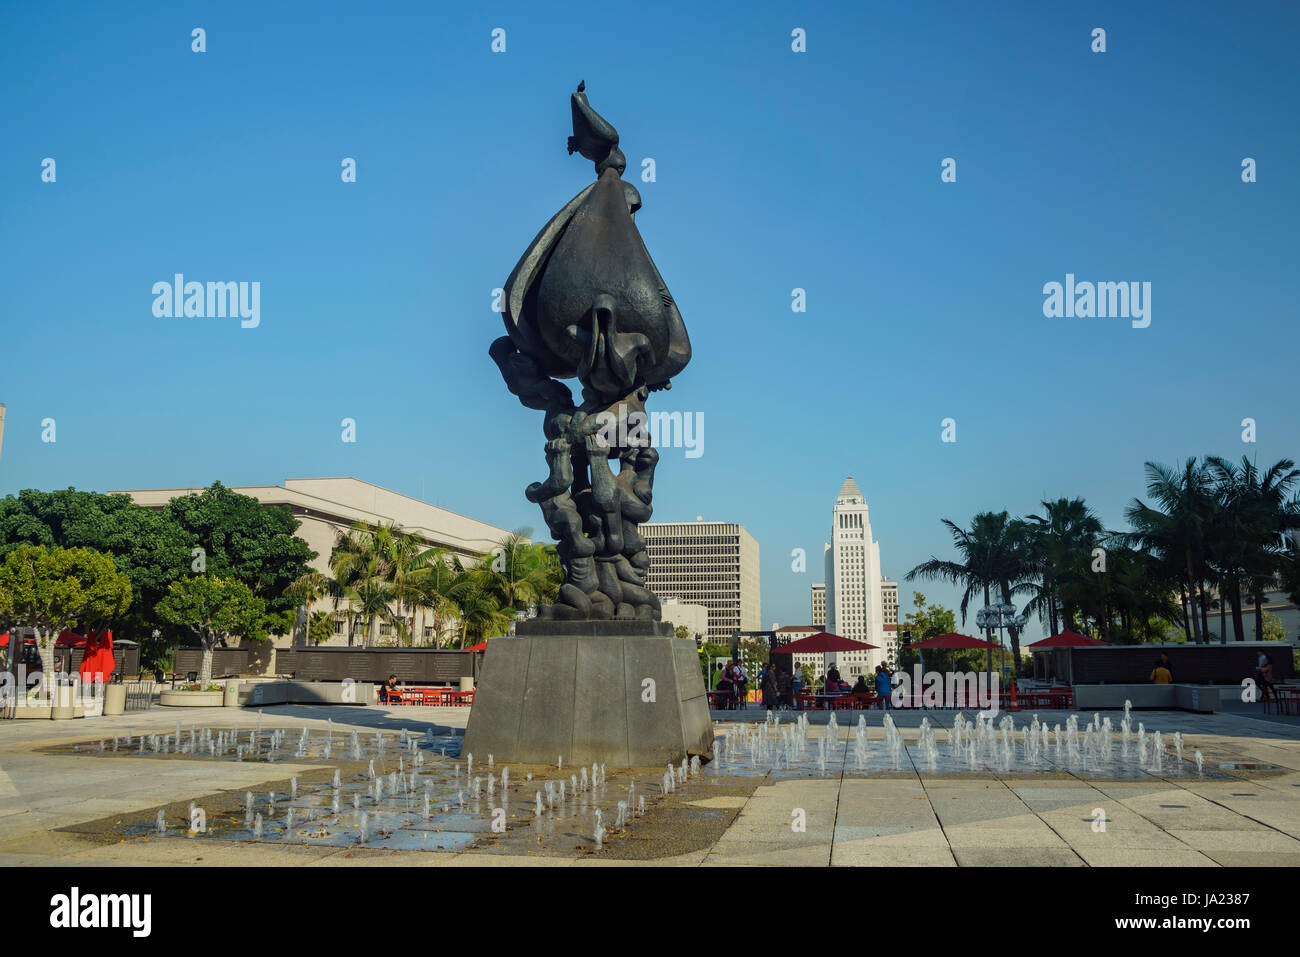 Los Angeles, APR 11: Big peace on earth statue and fountain with city hall behind on APR 11, 2017 at Los Angeles - Stock Image